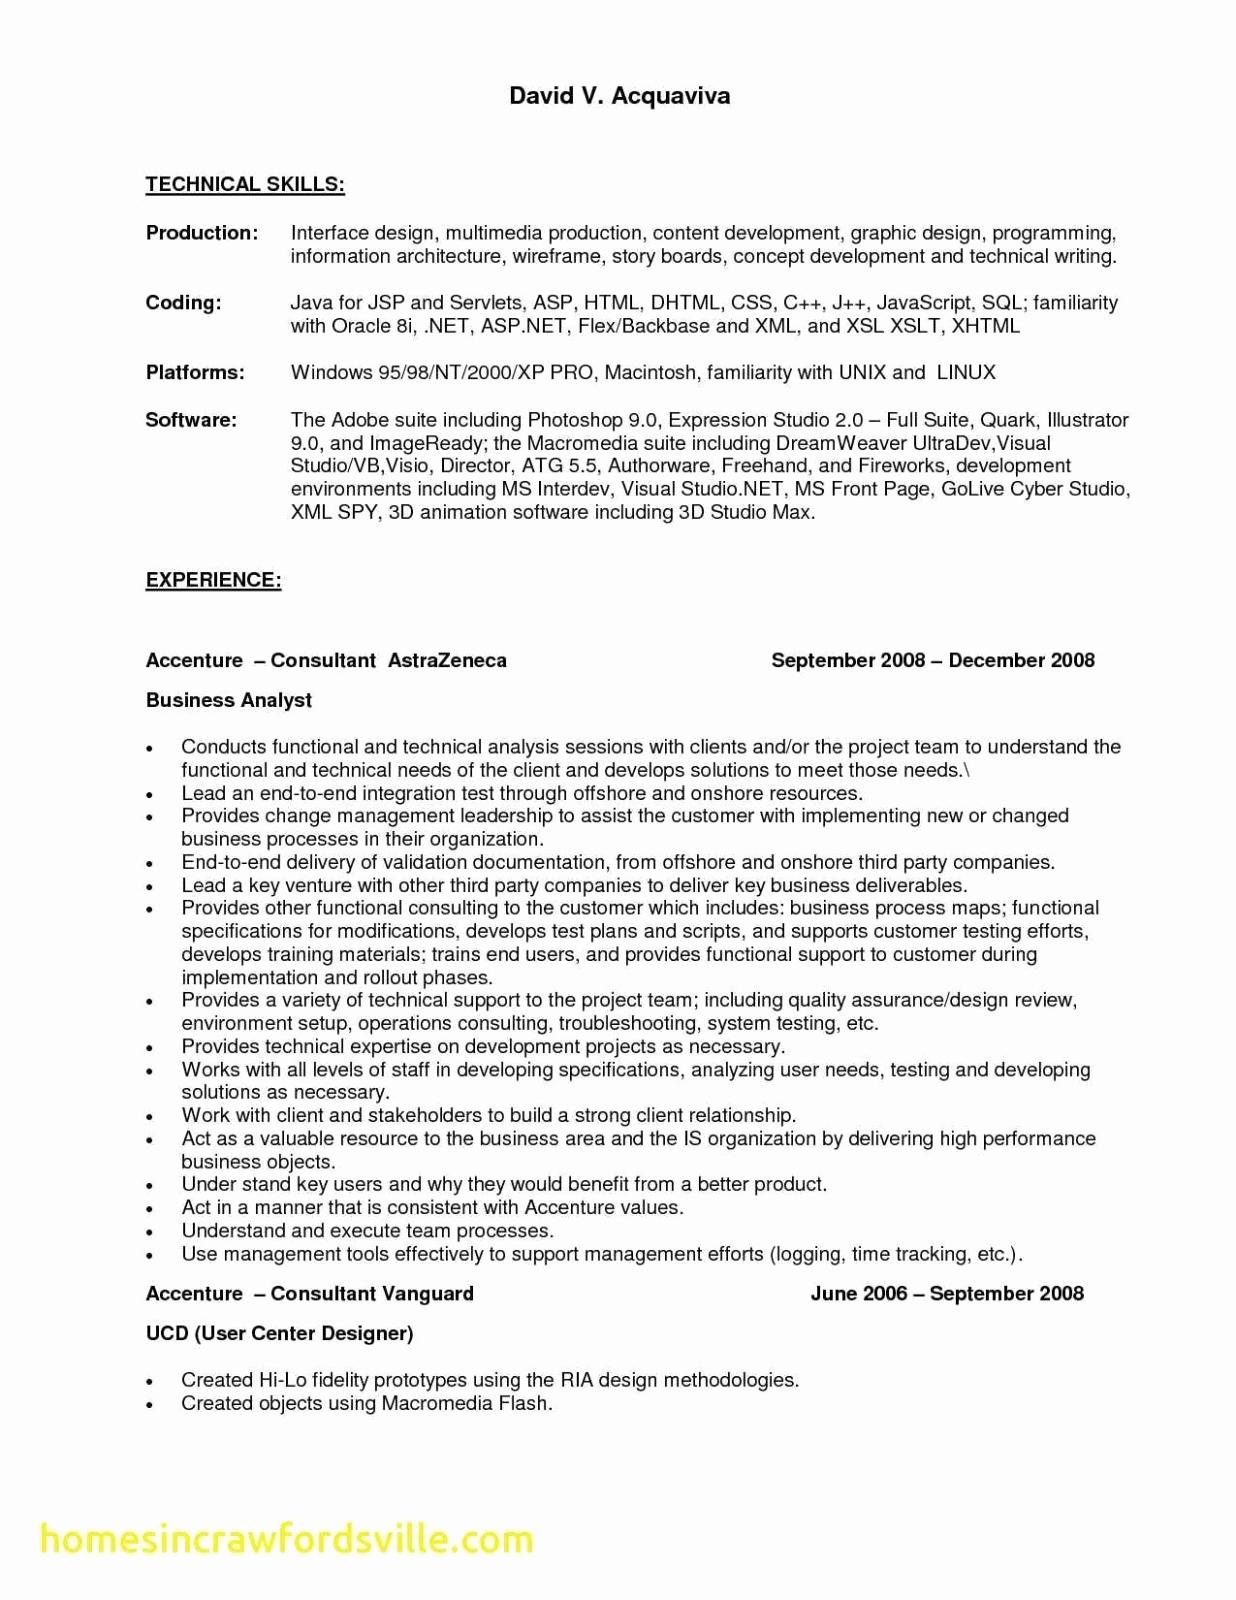 Business Analyst Resume Examples - Business Analyst Resume Samples New Business Analyst Resume